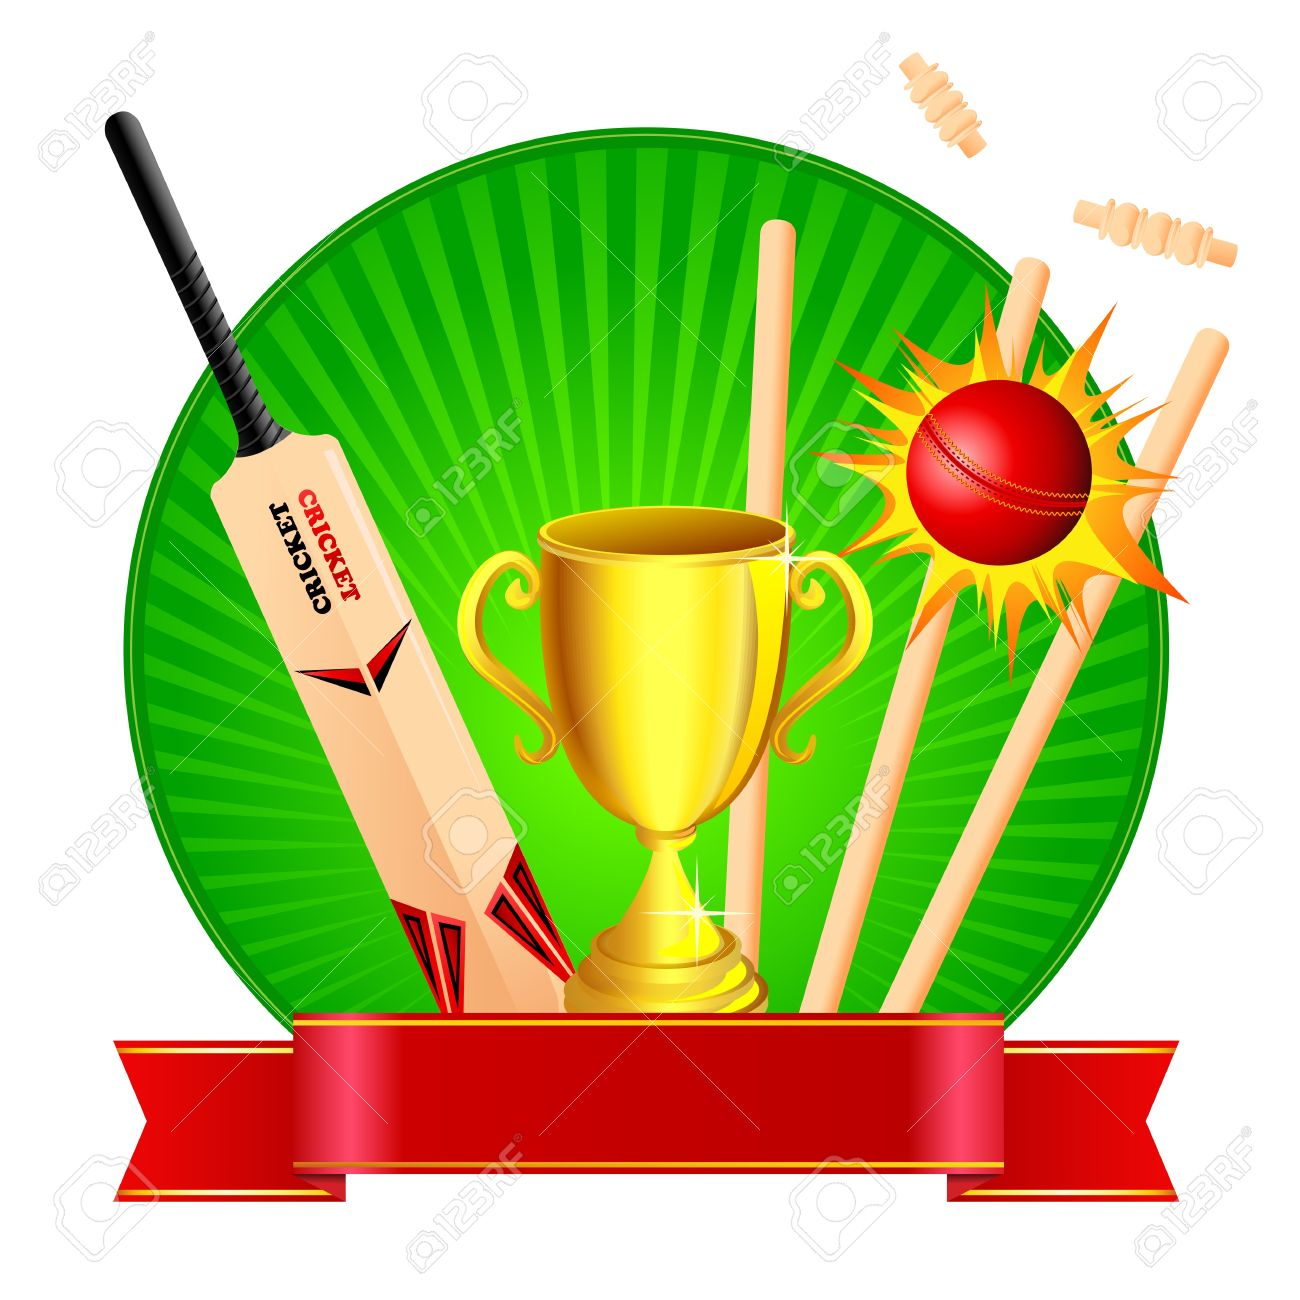 1300x1300 Bat clipart cricket equipment